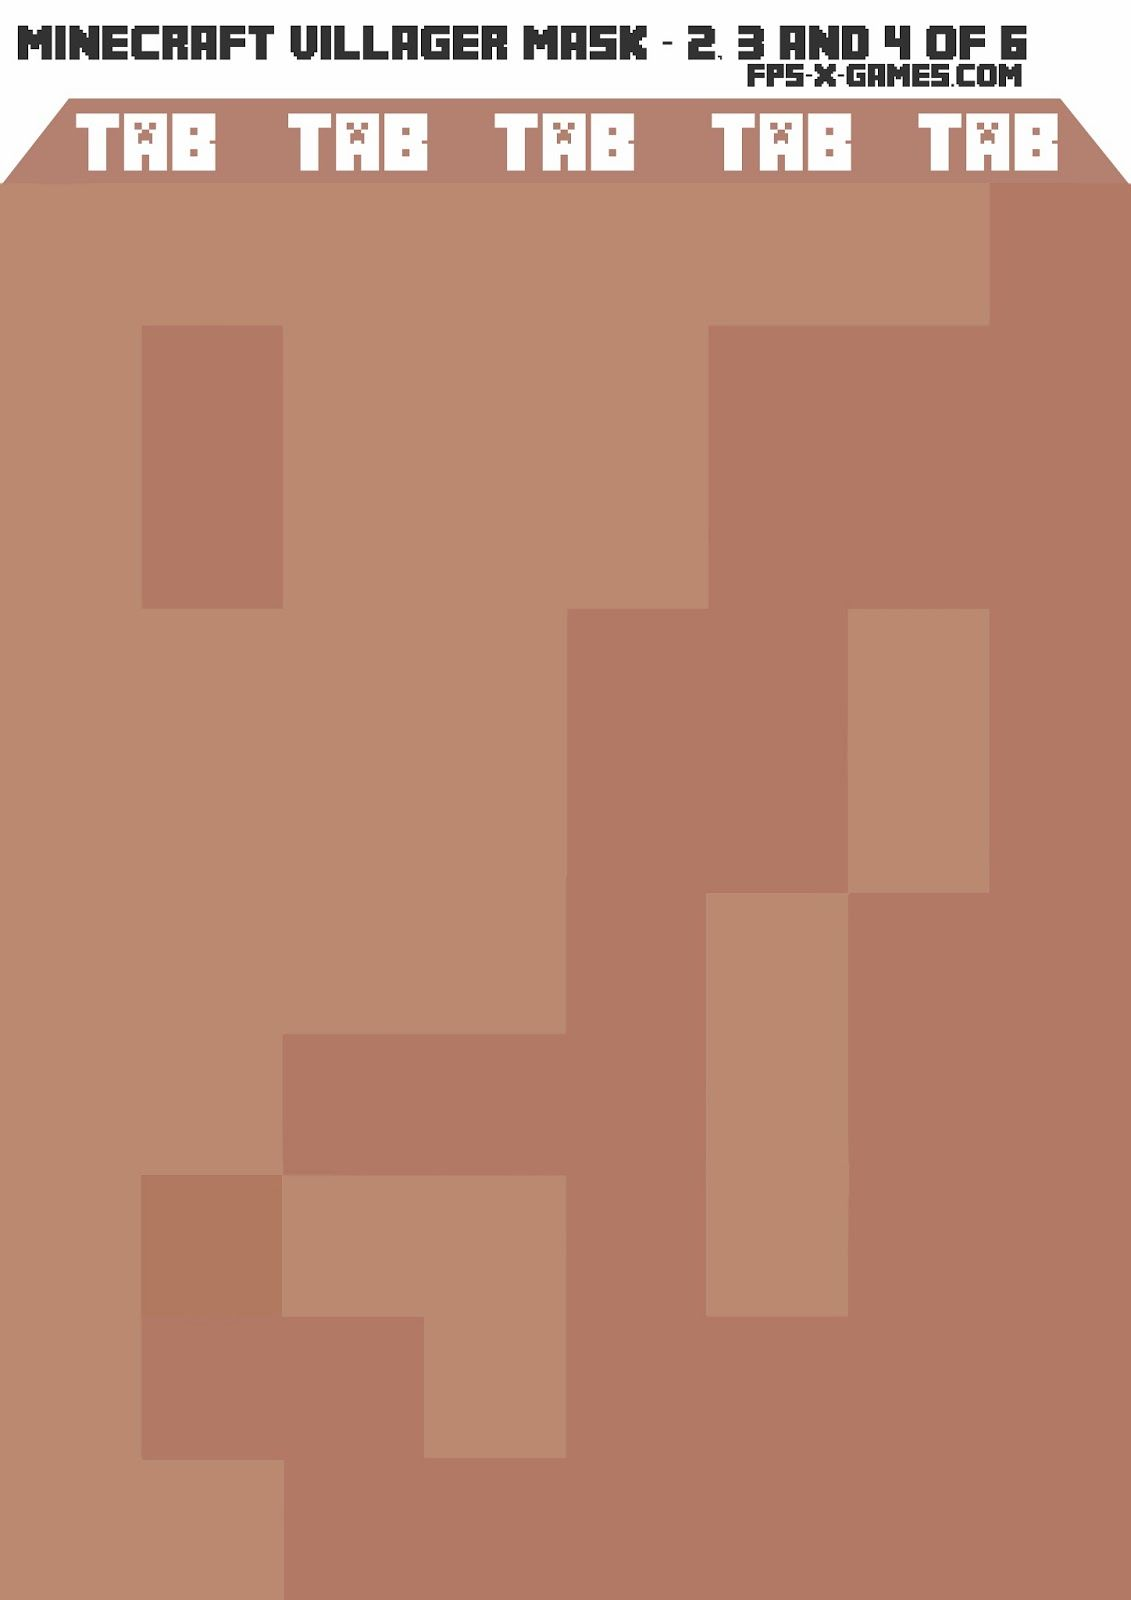 Minecraft Villager Mask Template 2 3 And 4 Minecraft